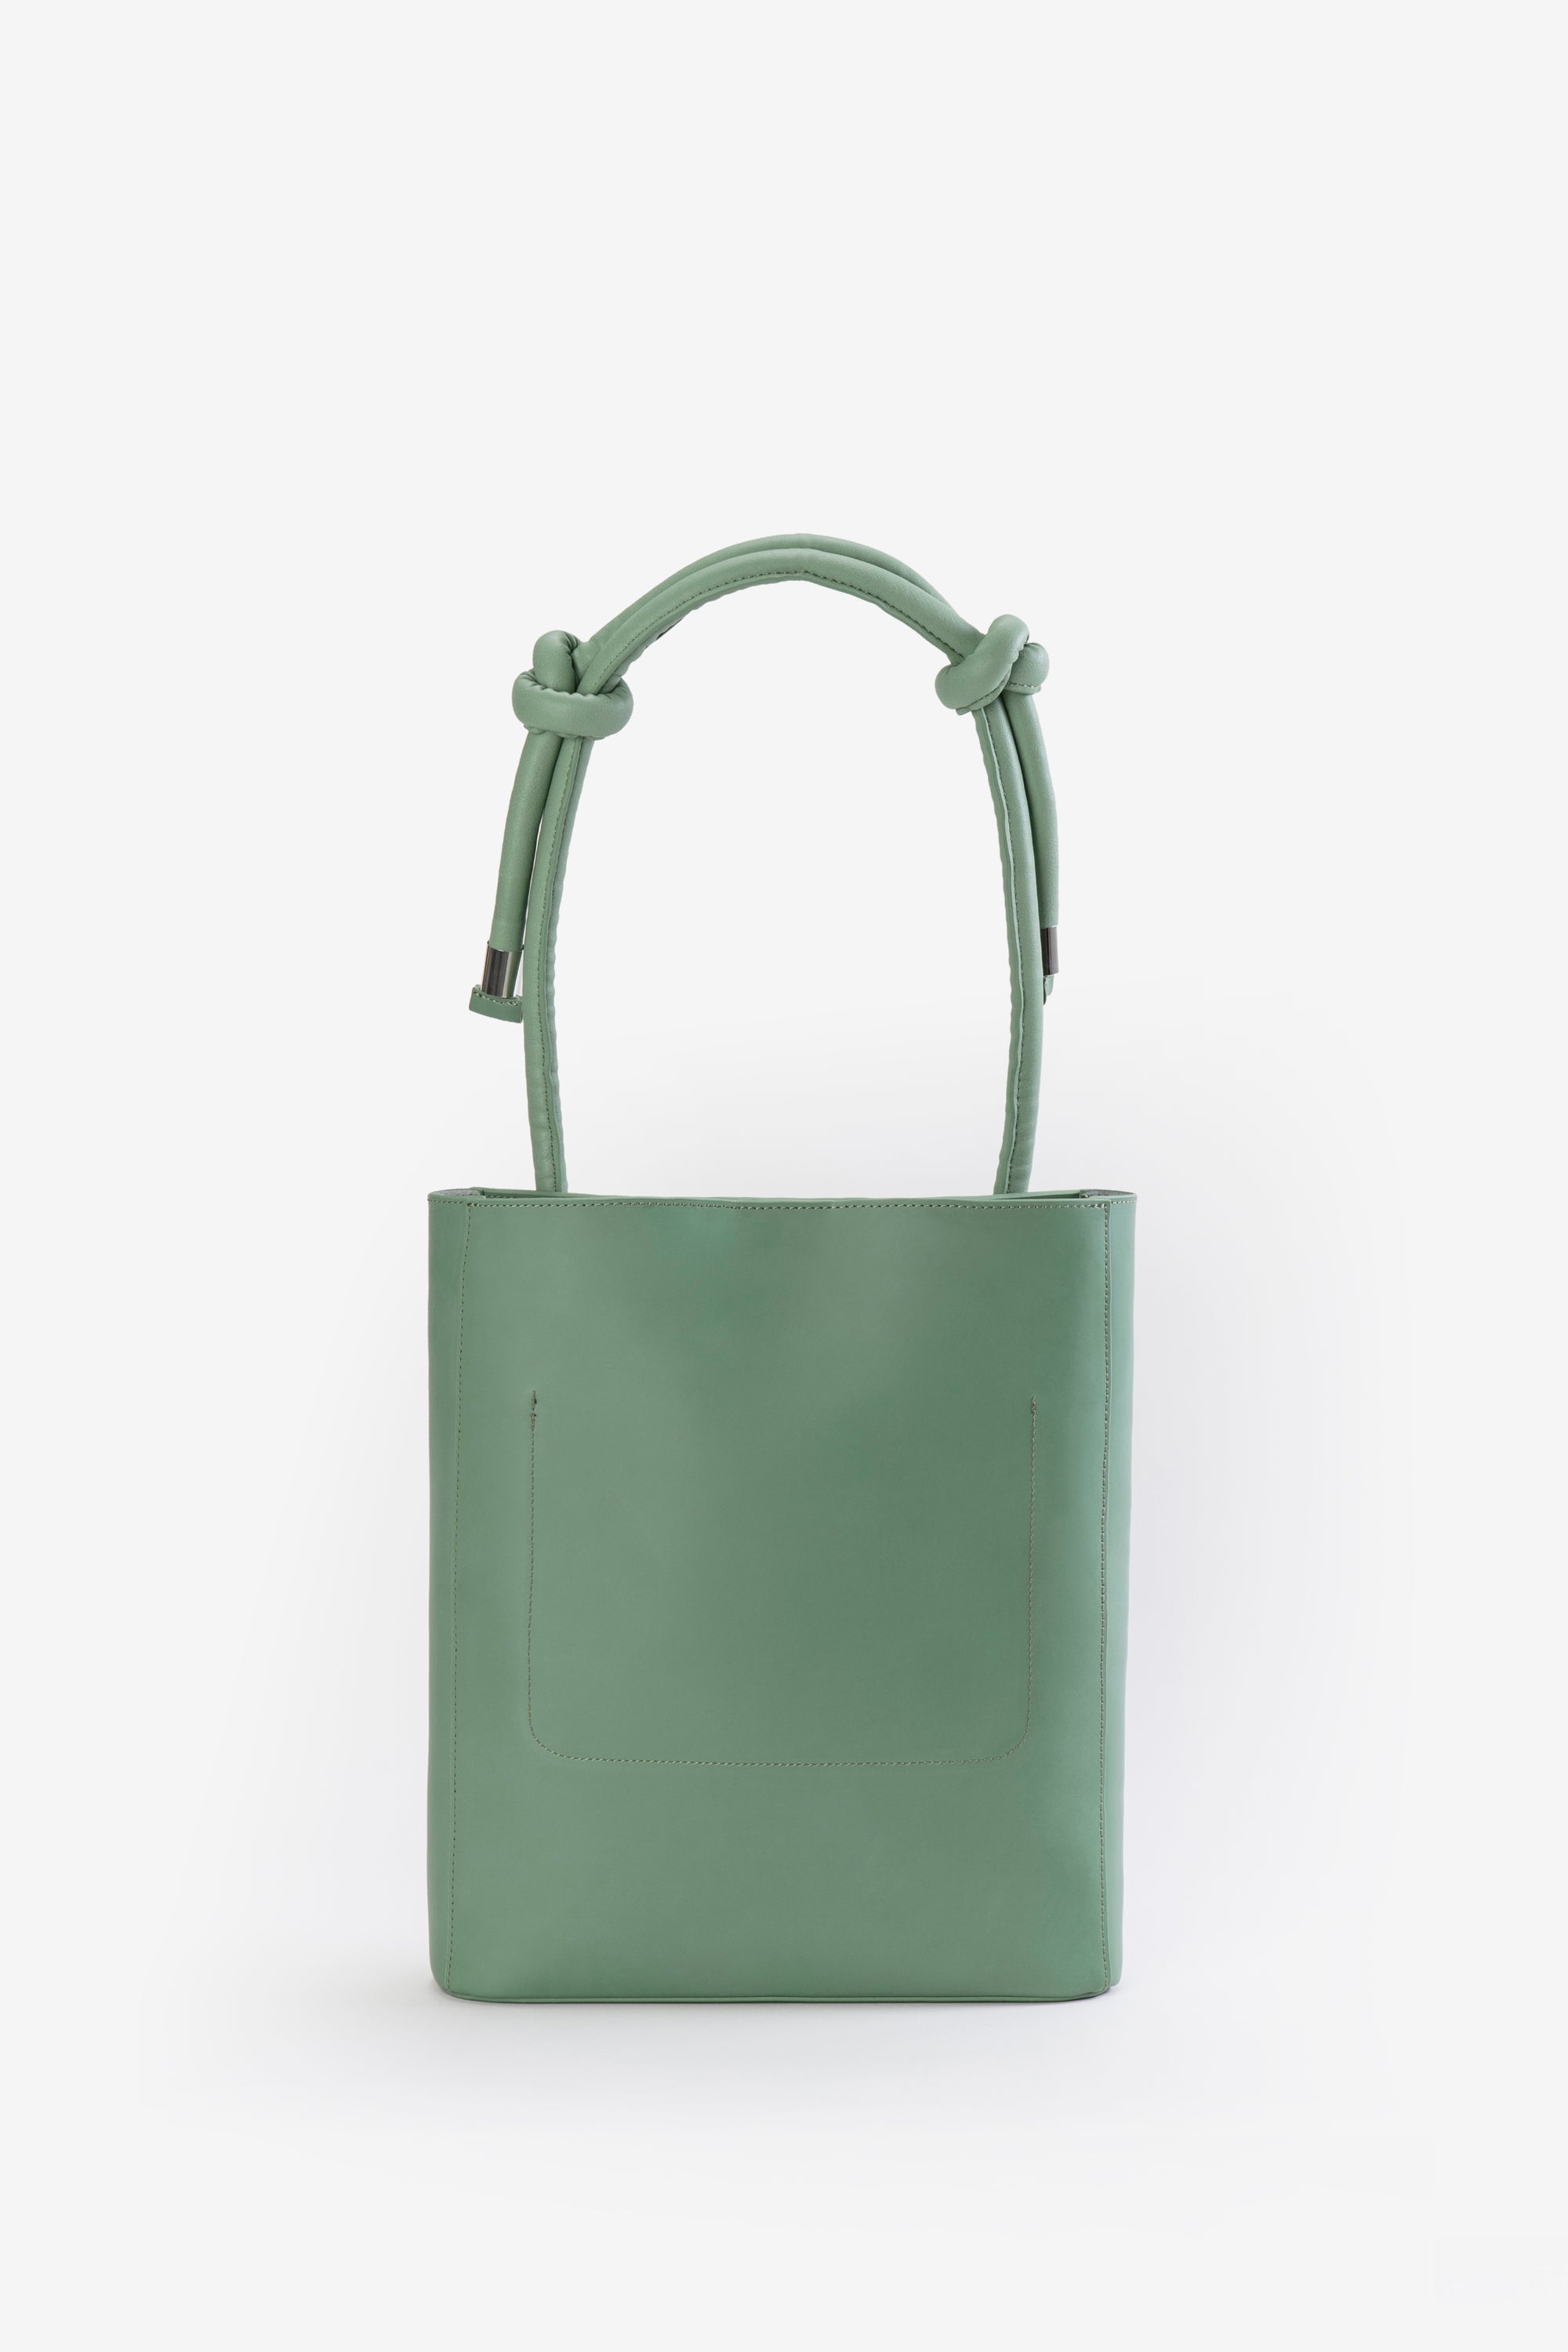 Image of ZOEE 2 ways chunky knot leather bag with adjustable strap